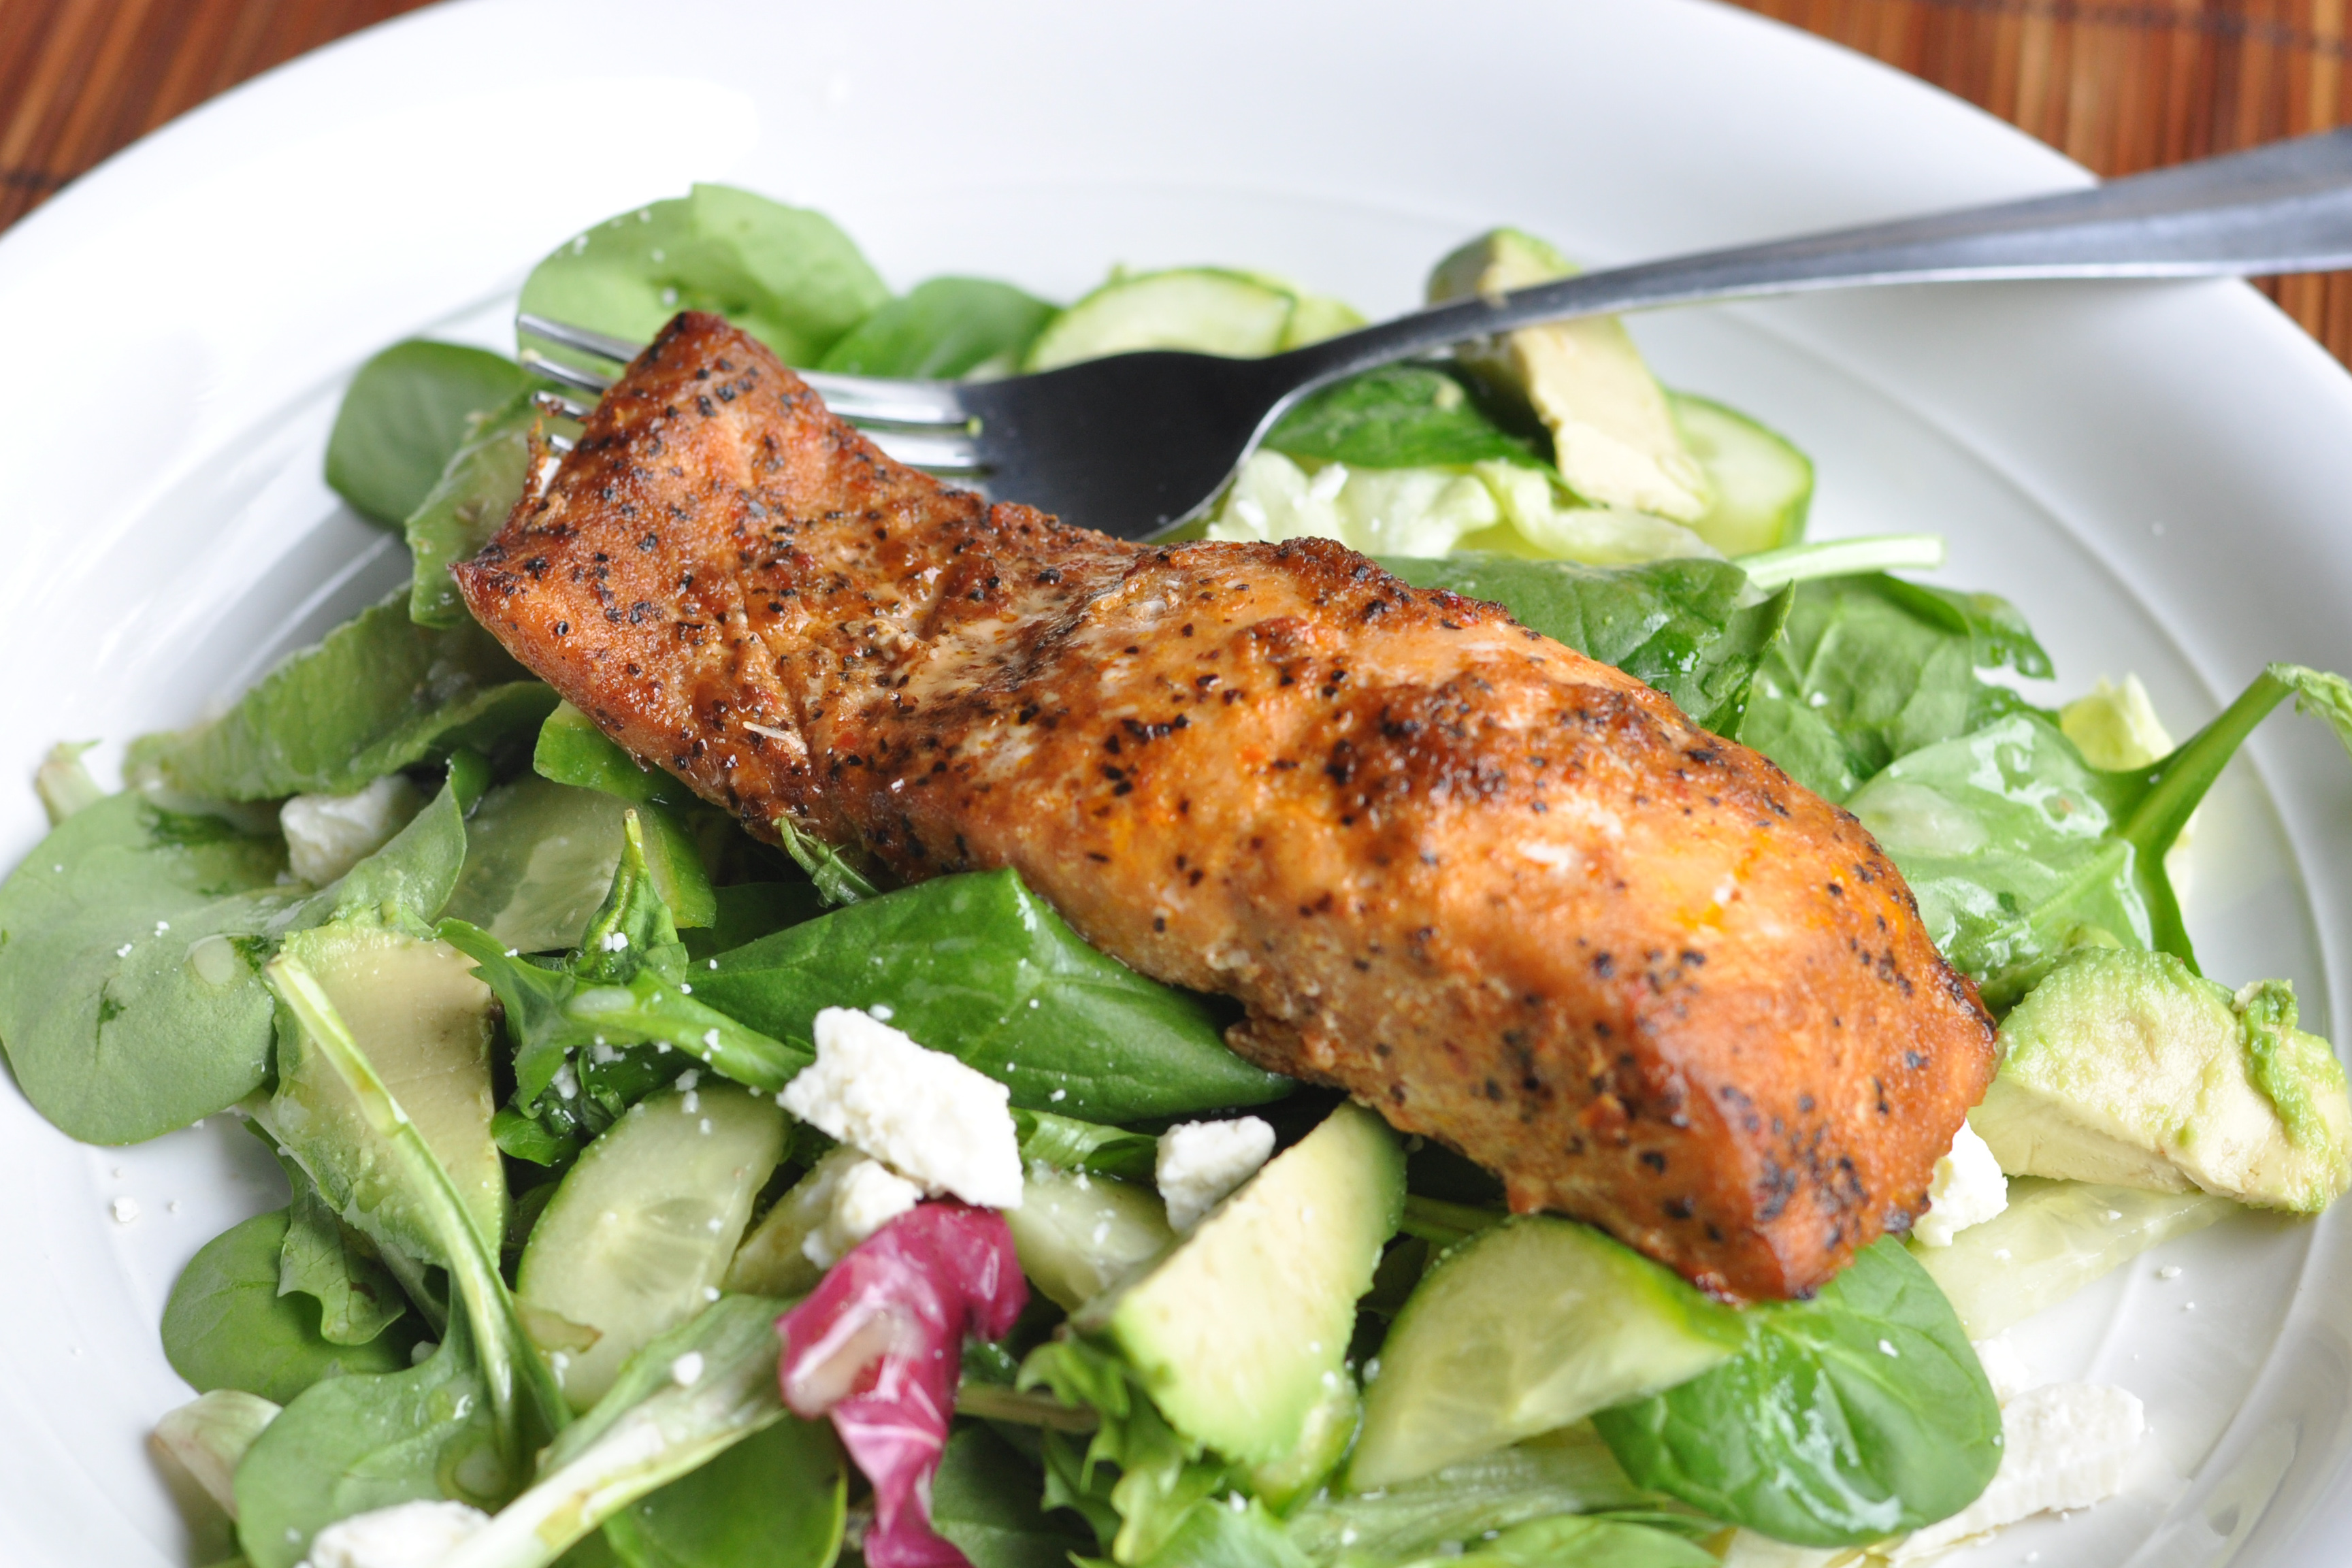 20 minute meal: Salad with Seasoned Salmon - Nutritious Eats